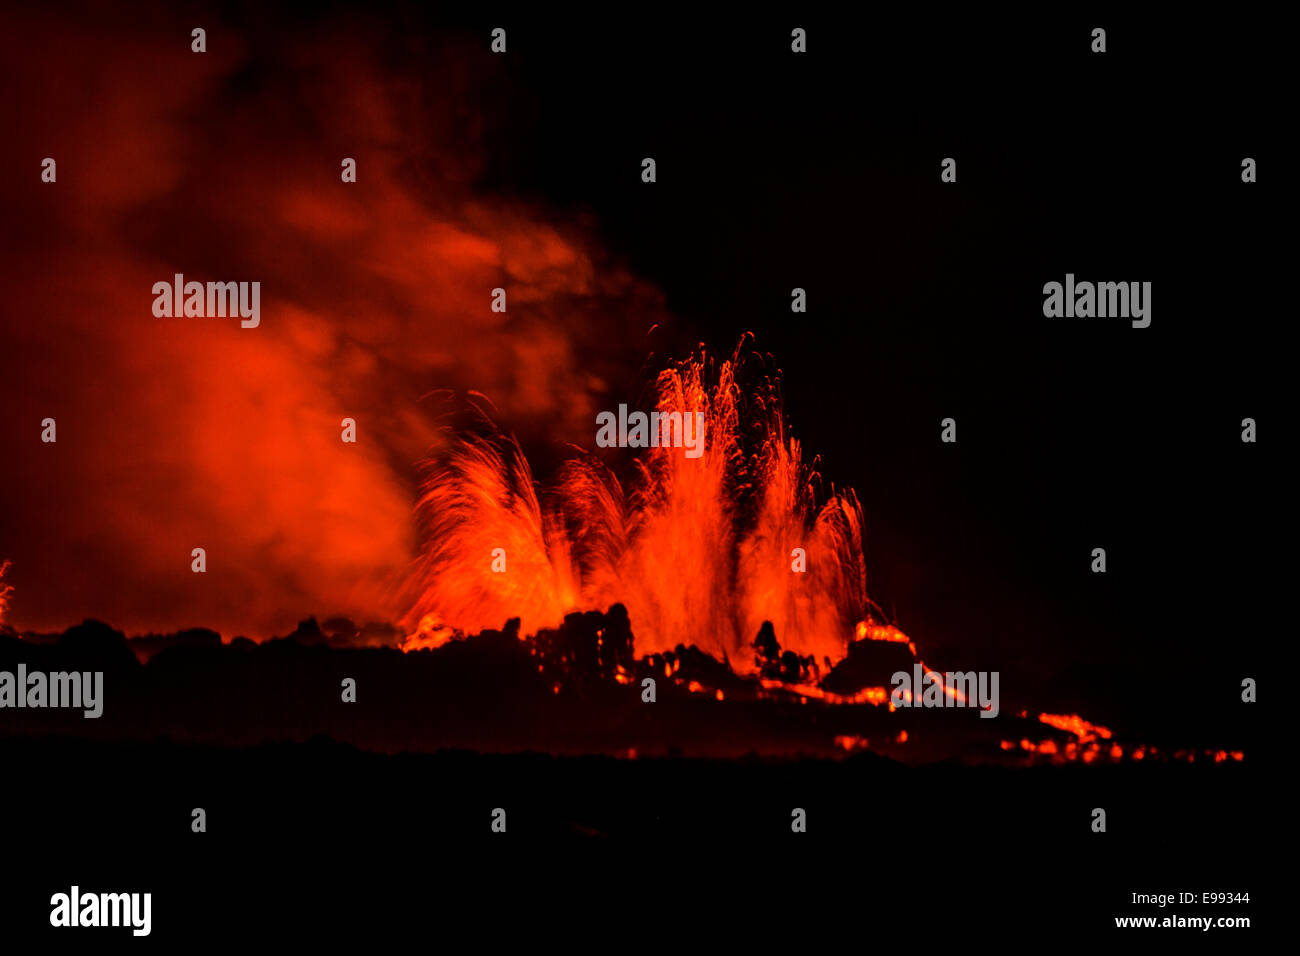 Lava fountains at night, eruption at the Holuhraun Fissure, near the Bardarbunga Volcano, Iceland.  August 29, 2014 Stock Photo